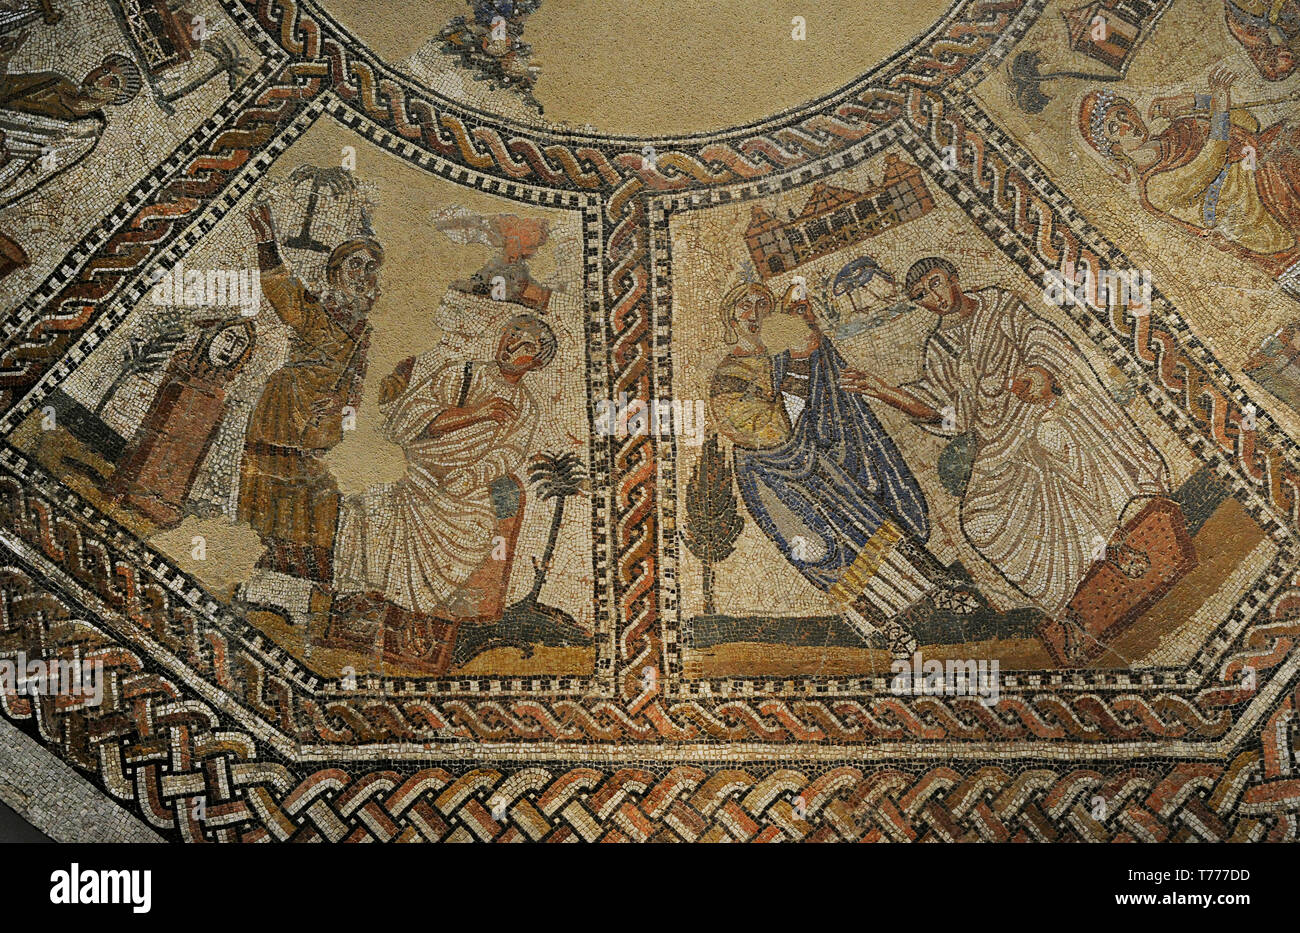 Mosaic of the Nine Muses. It depictis the Muses accompanied by great masters of the arts. Detail. 4th century AD. From Arellano (Navarre, Spain). National Archaeological Museum. Madrid. Spain. - Stock Image